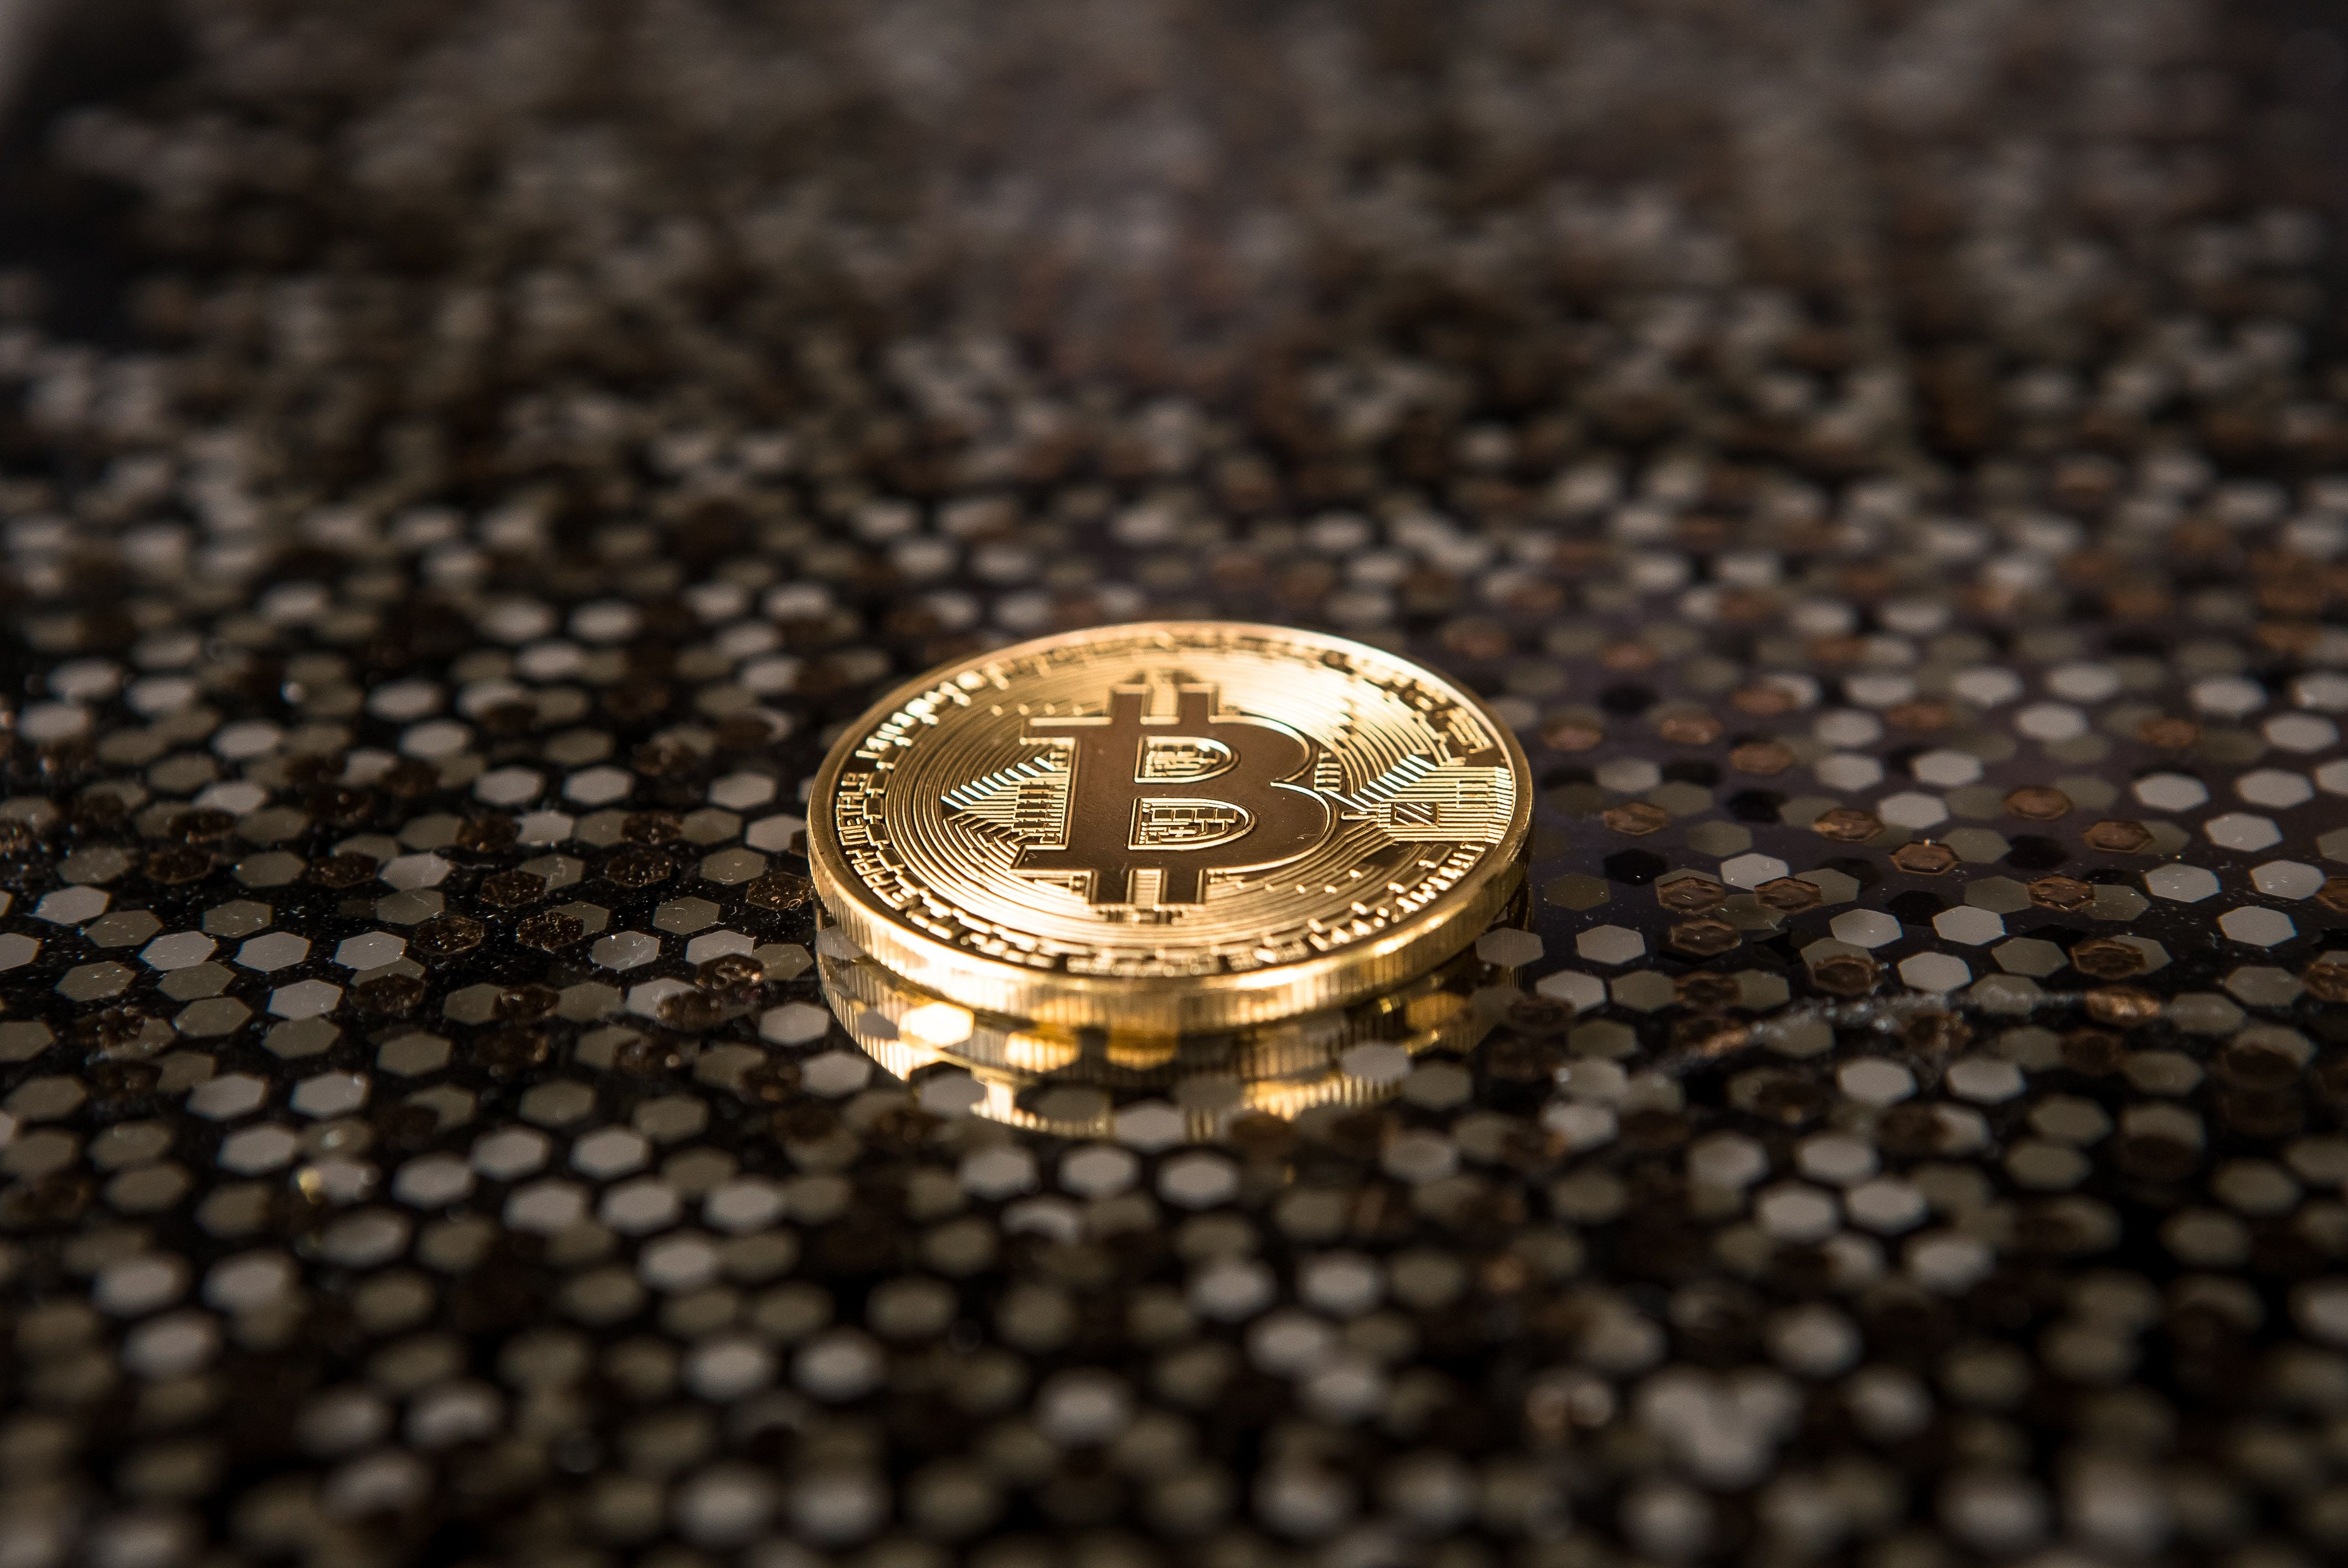 Best cryptocurrency coins to buy 2019